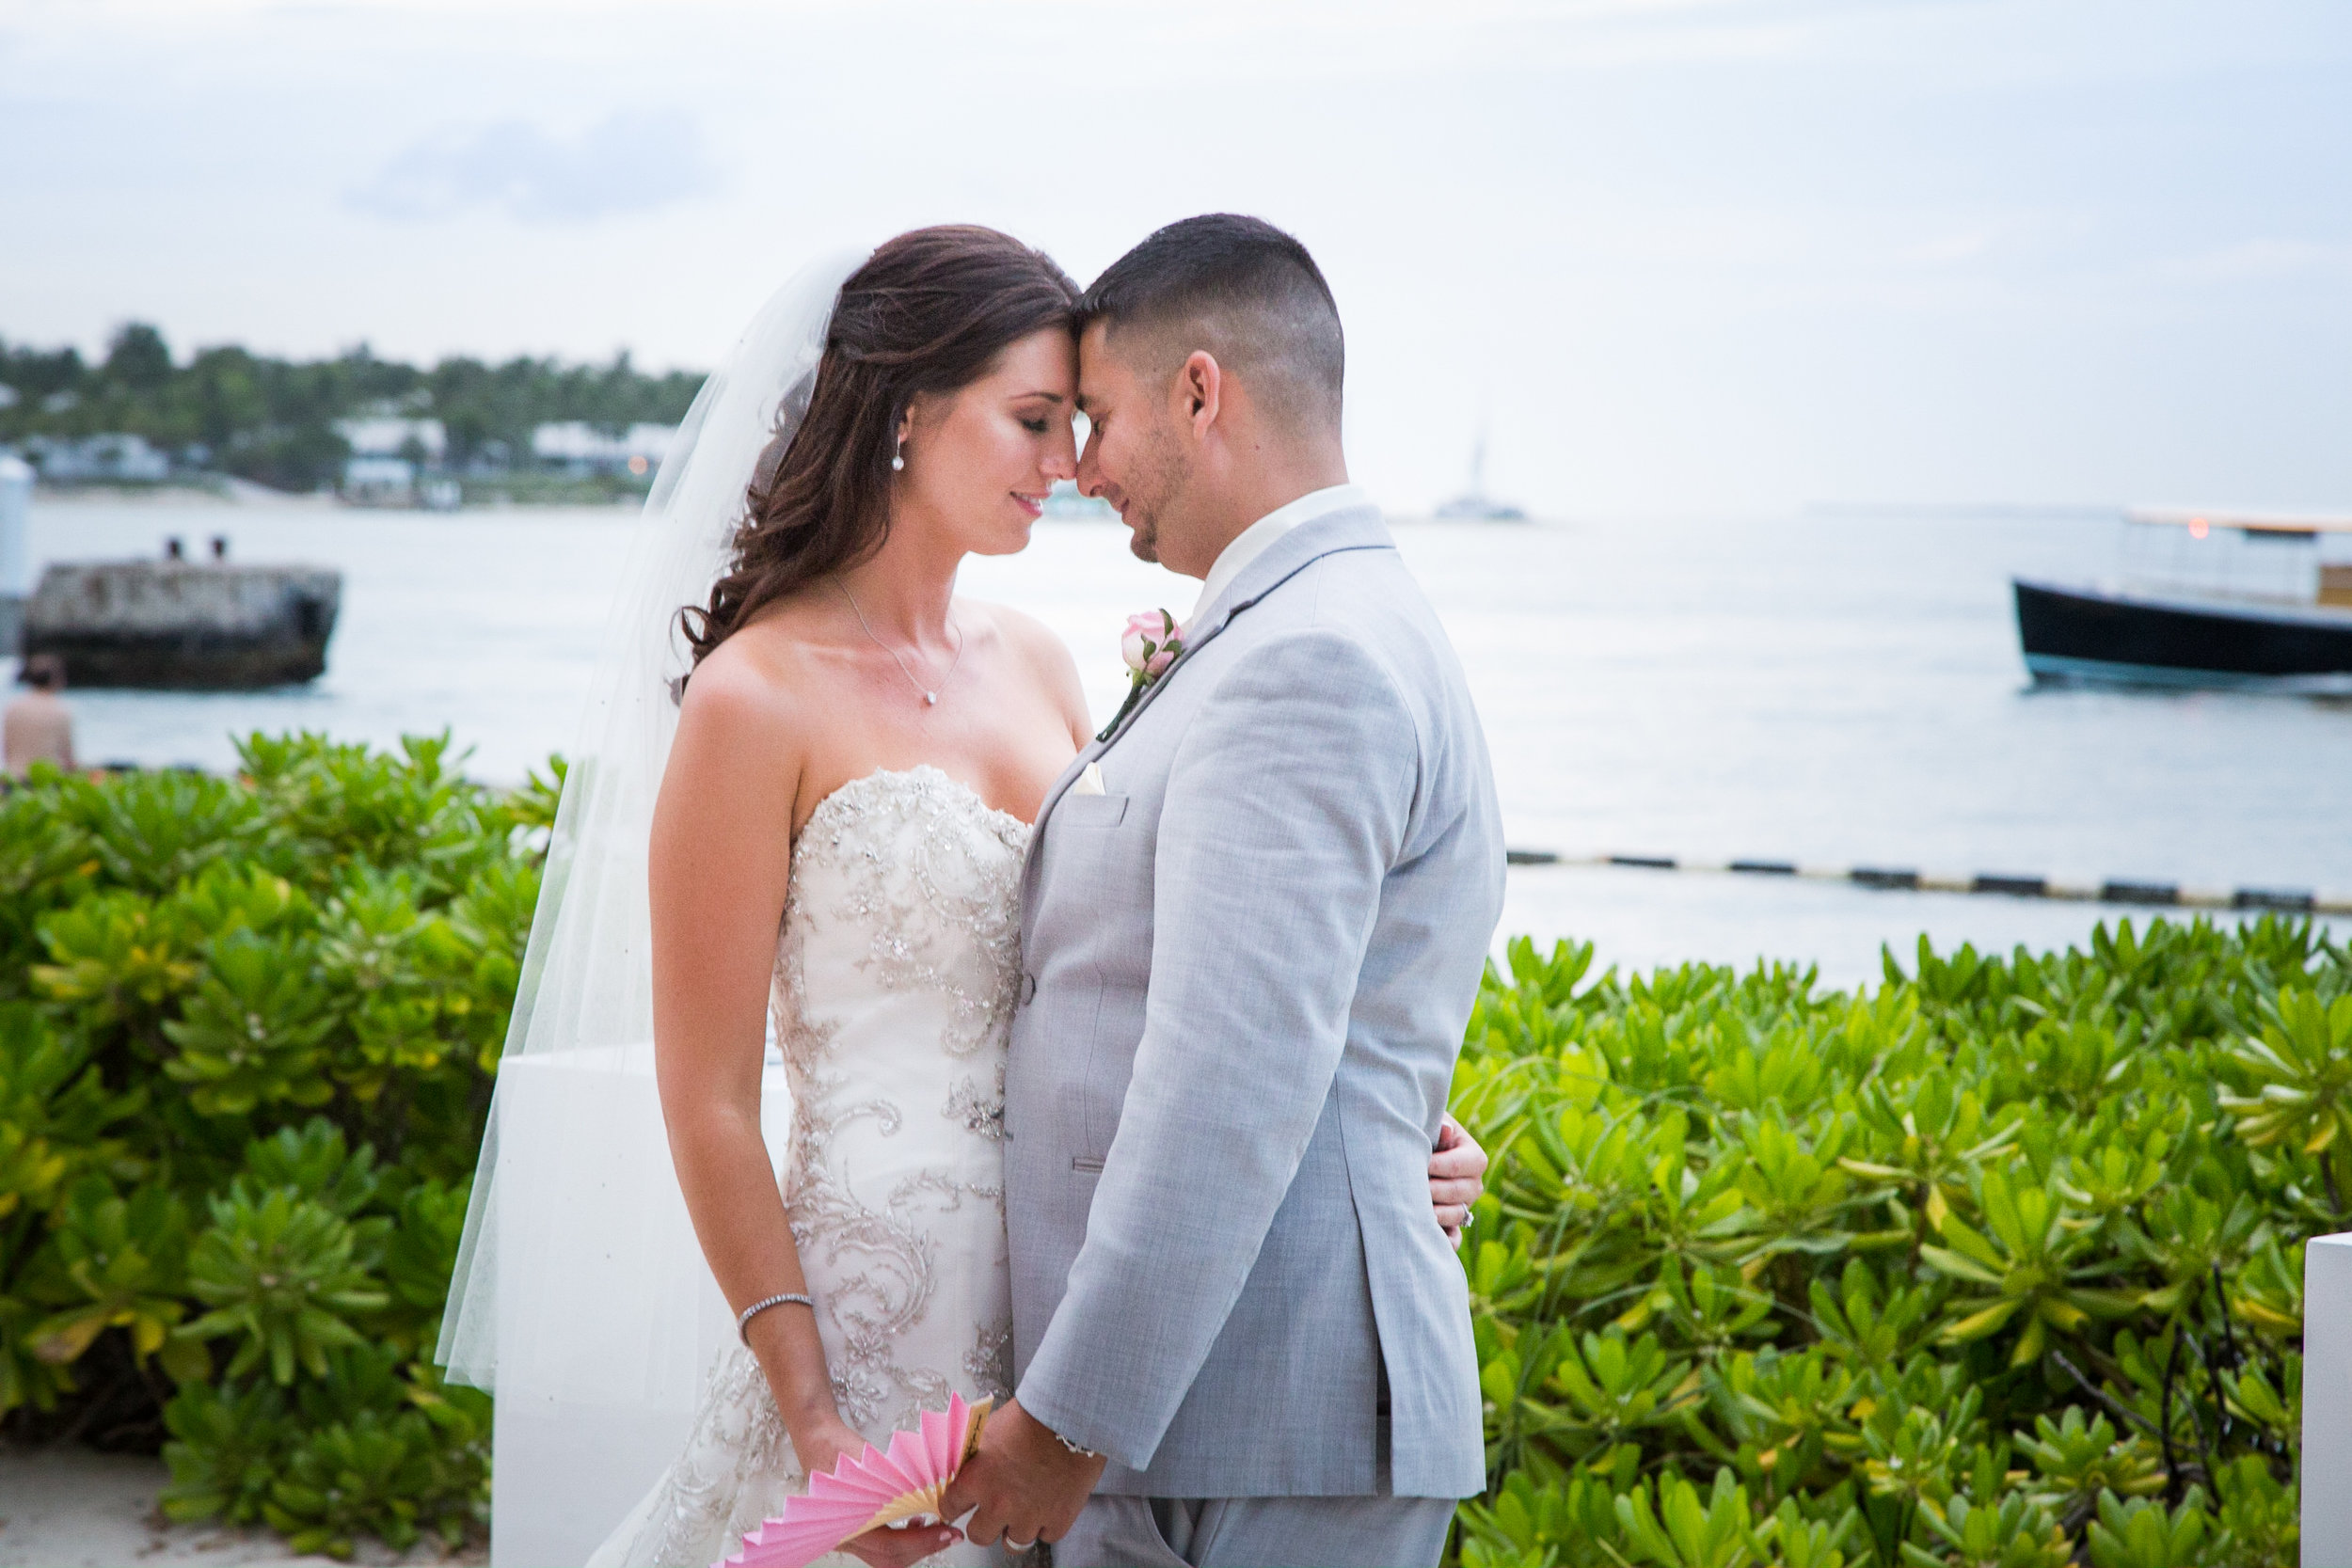 After getting married on the beach at the Pier House Resort in Key West, bride and groom Jennifer and Justin take a moment to enjoy each other's company with the ocean behind them